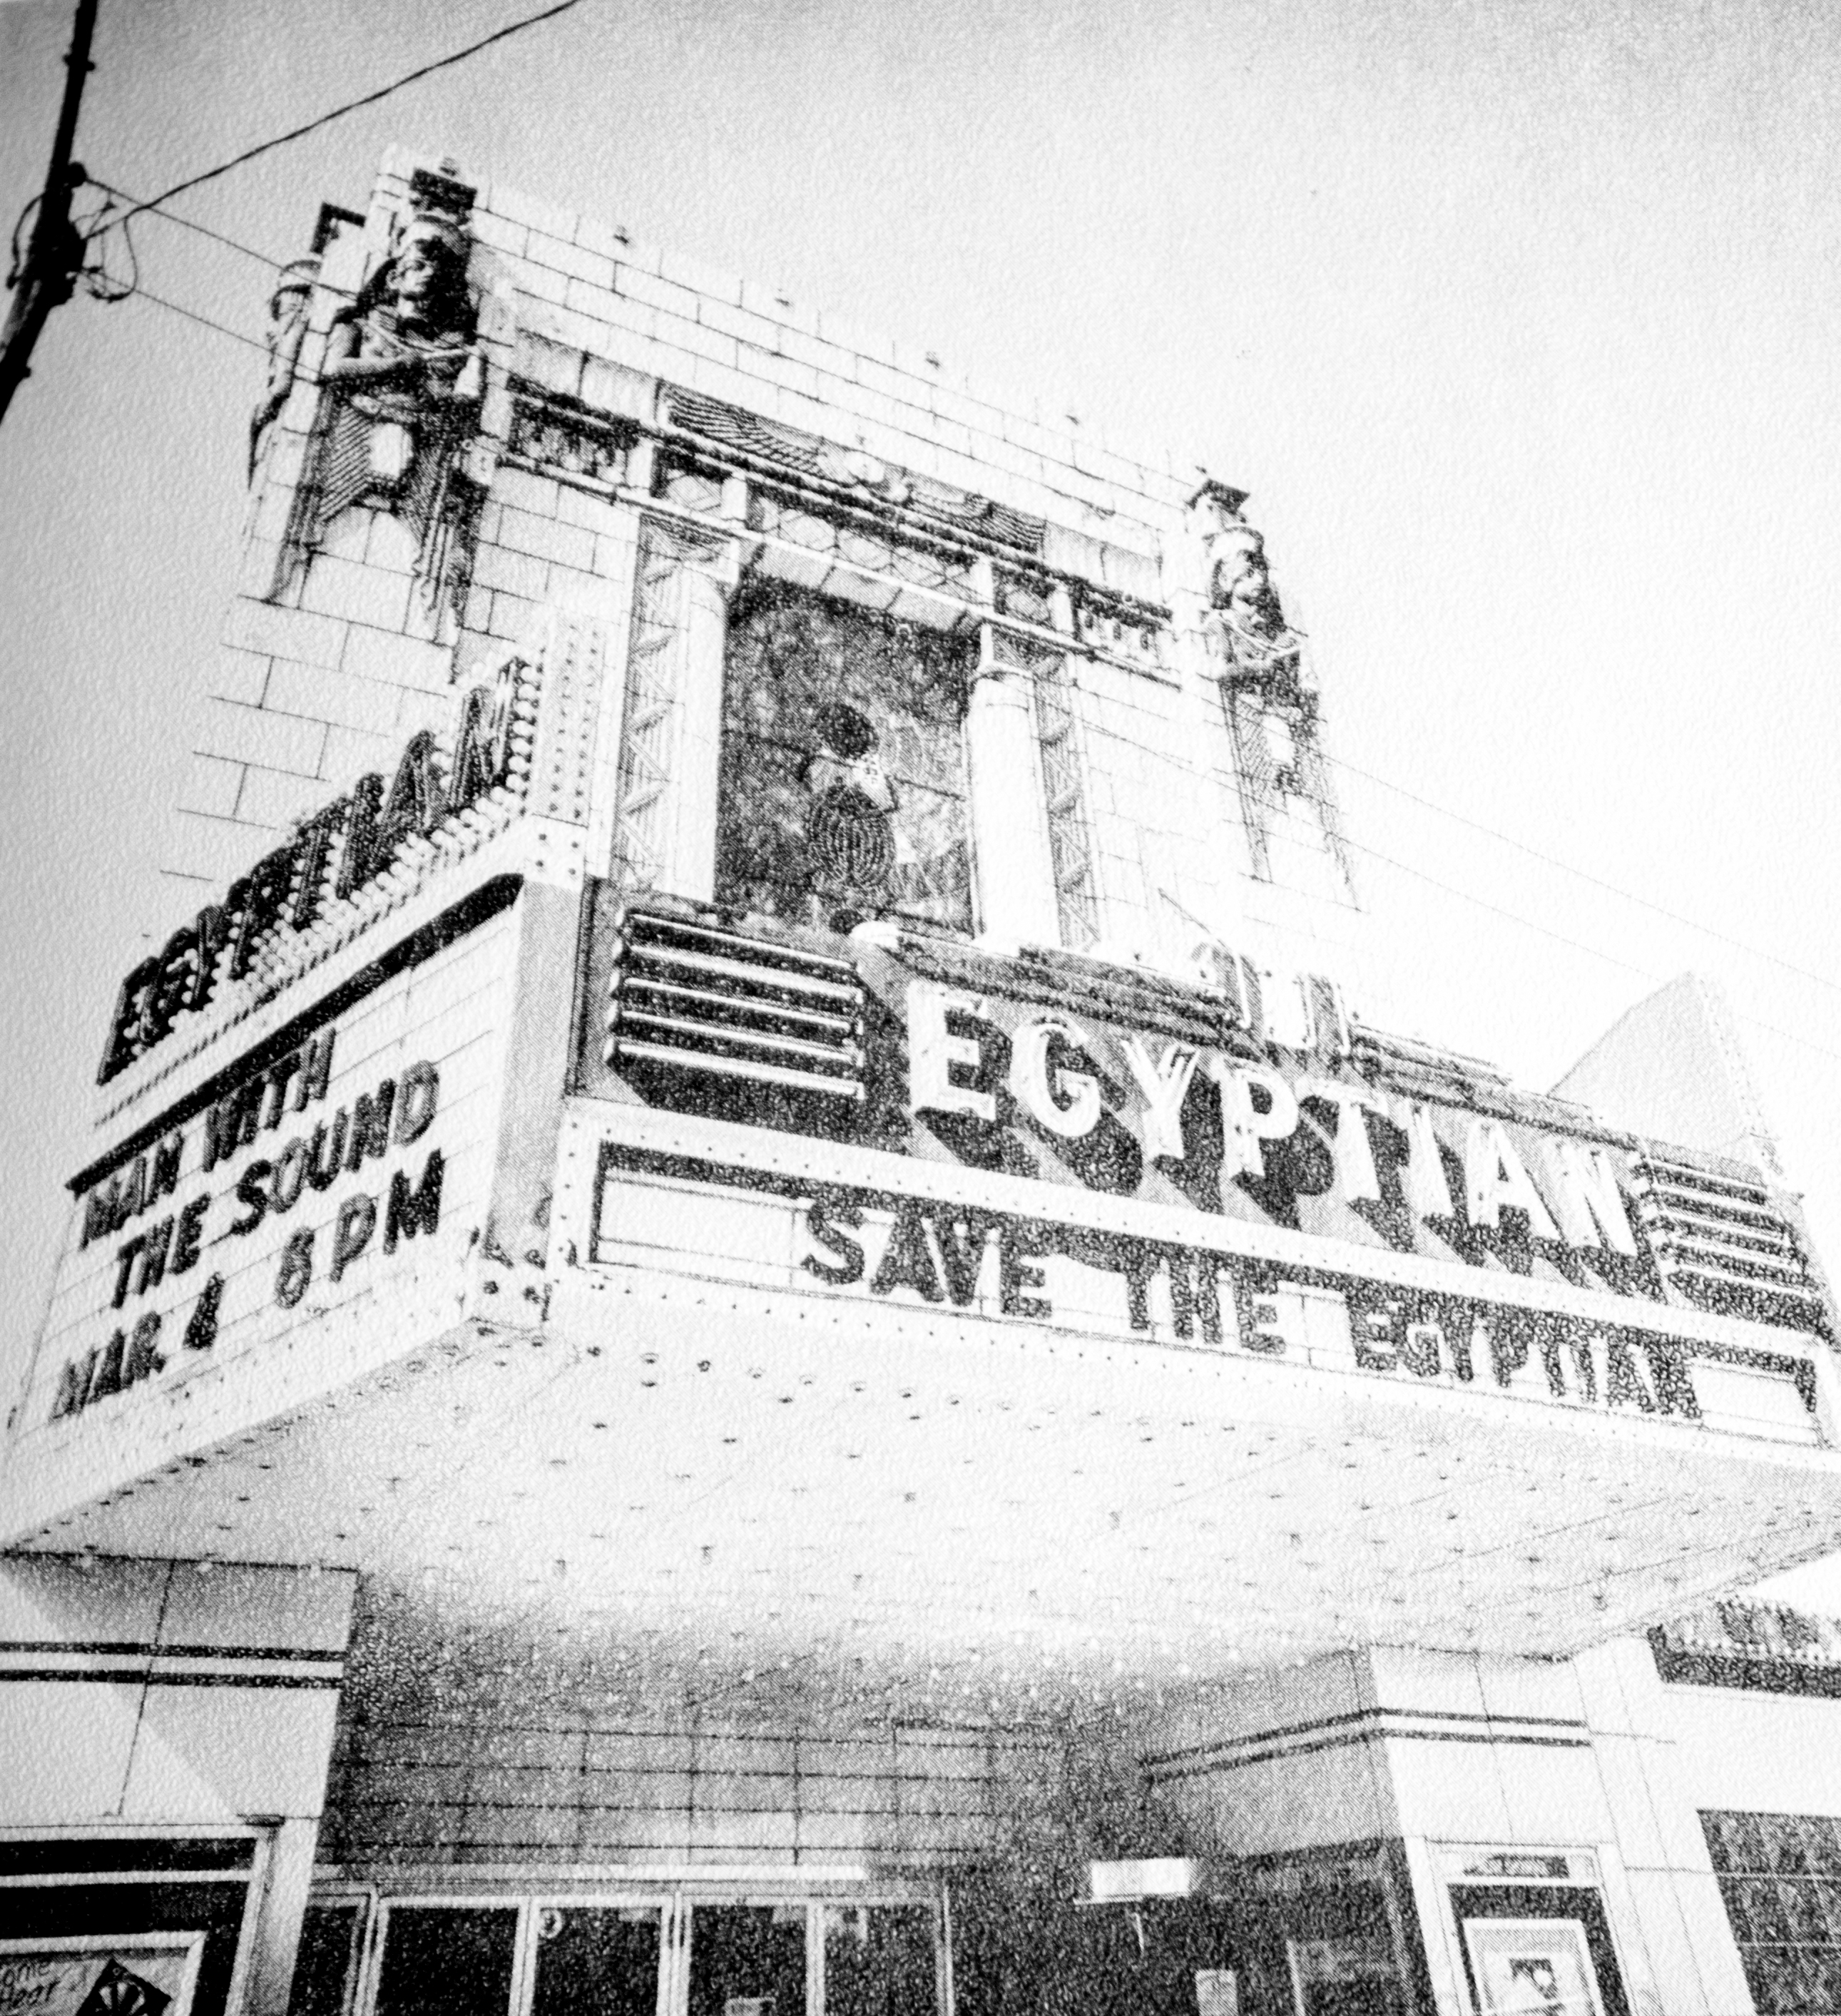 1979 view of the Egyptian Theater: Credit: http://egyptiantheatre.org/